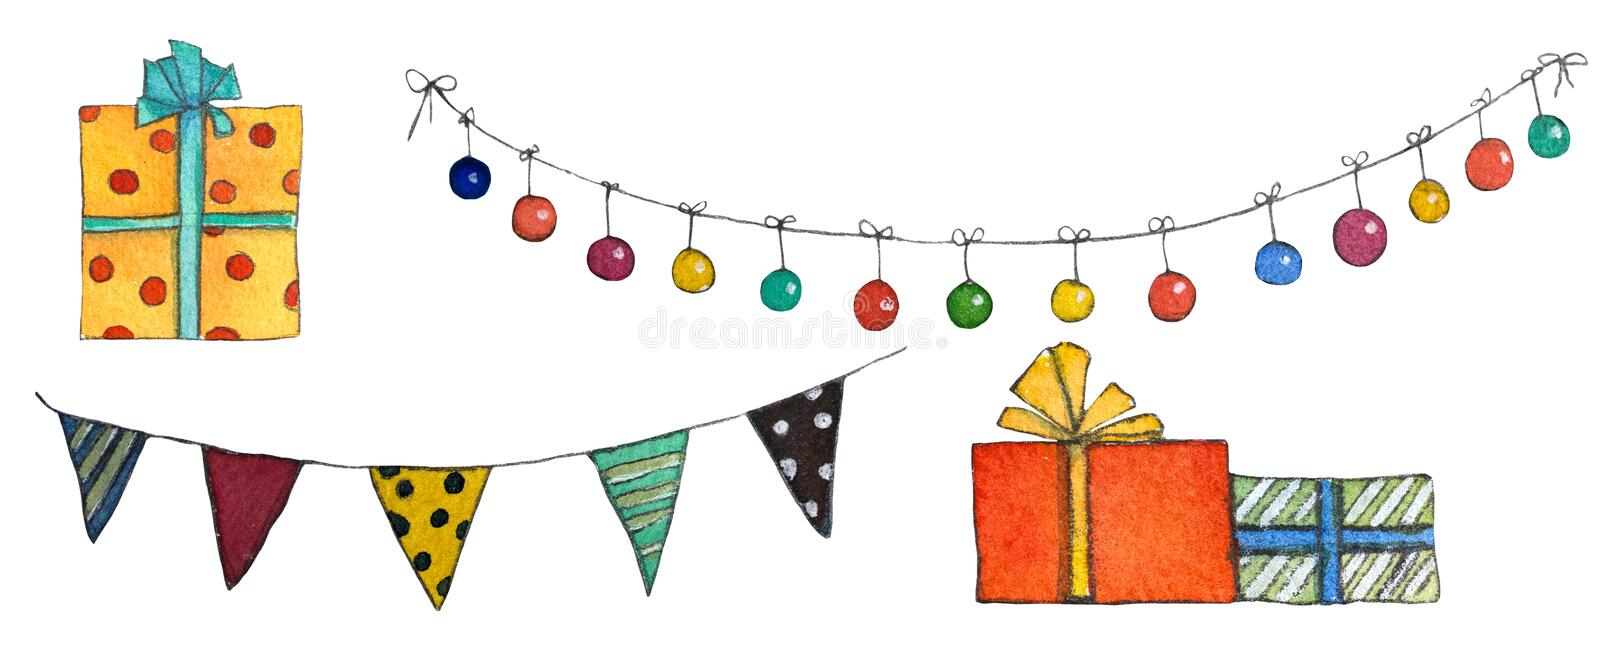 Set of christmas banners, lamps and gifts. vector illustration